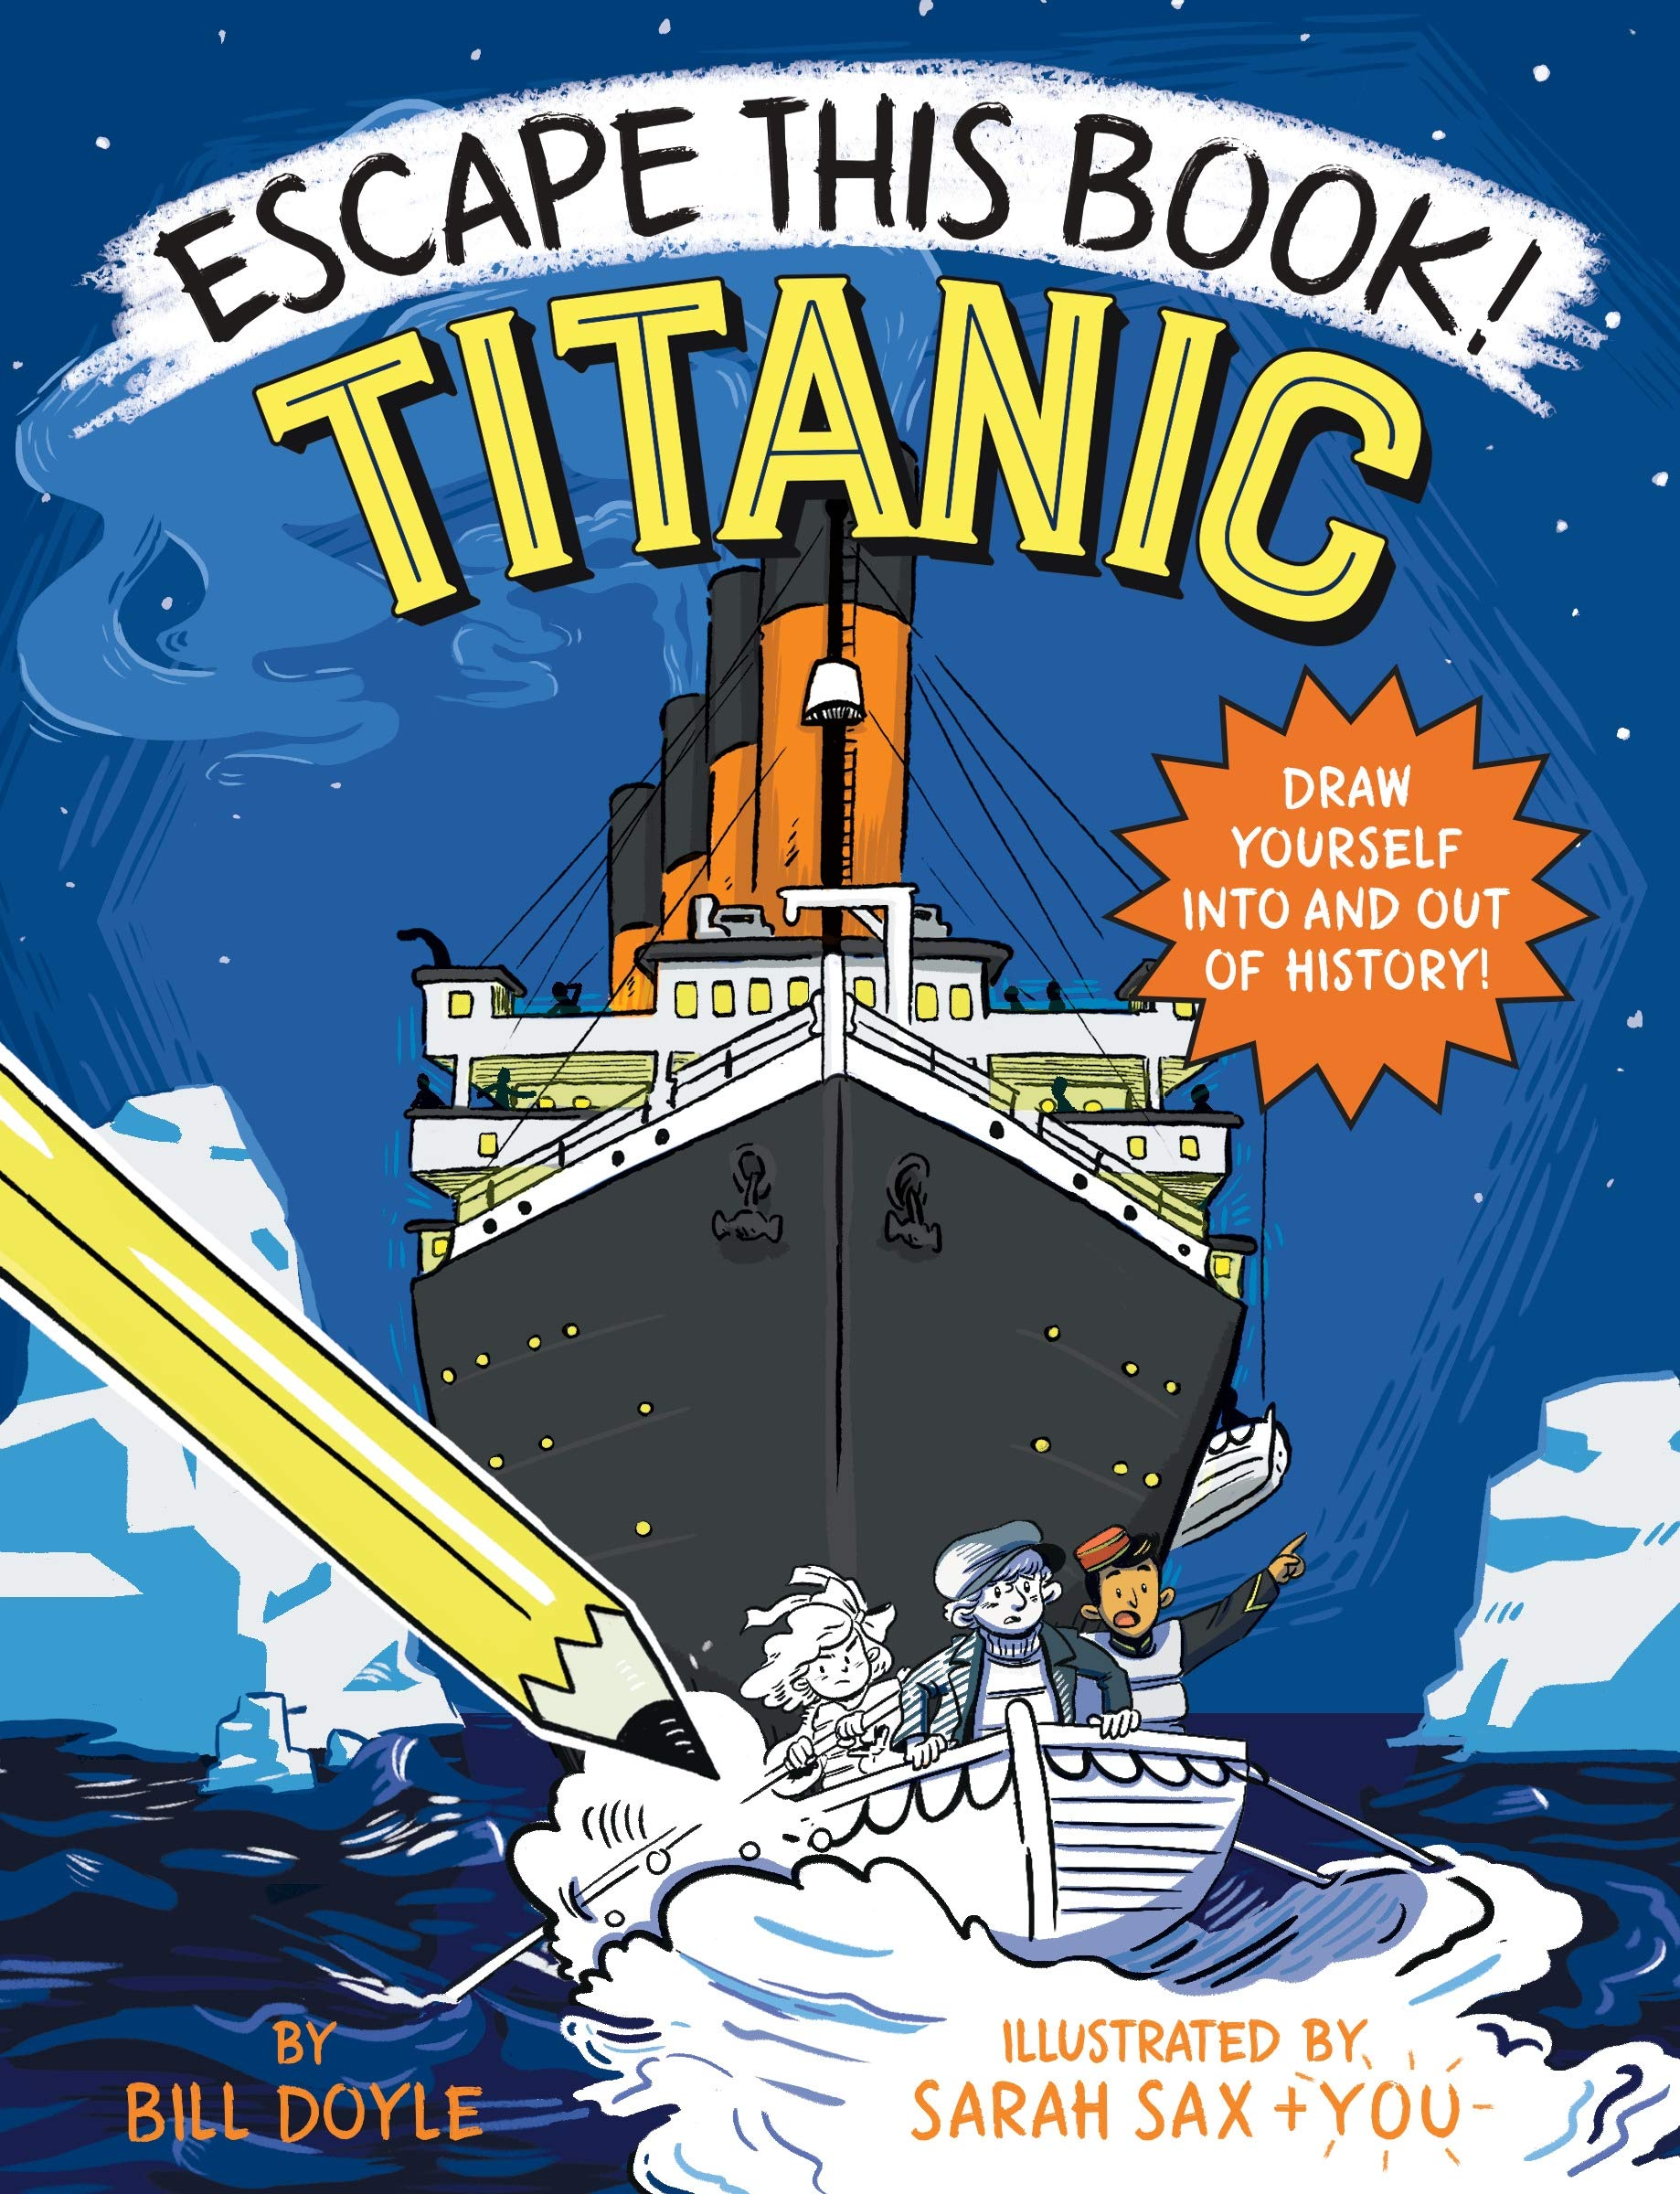 Random House Books for Young Readers (March 19, 2019)